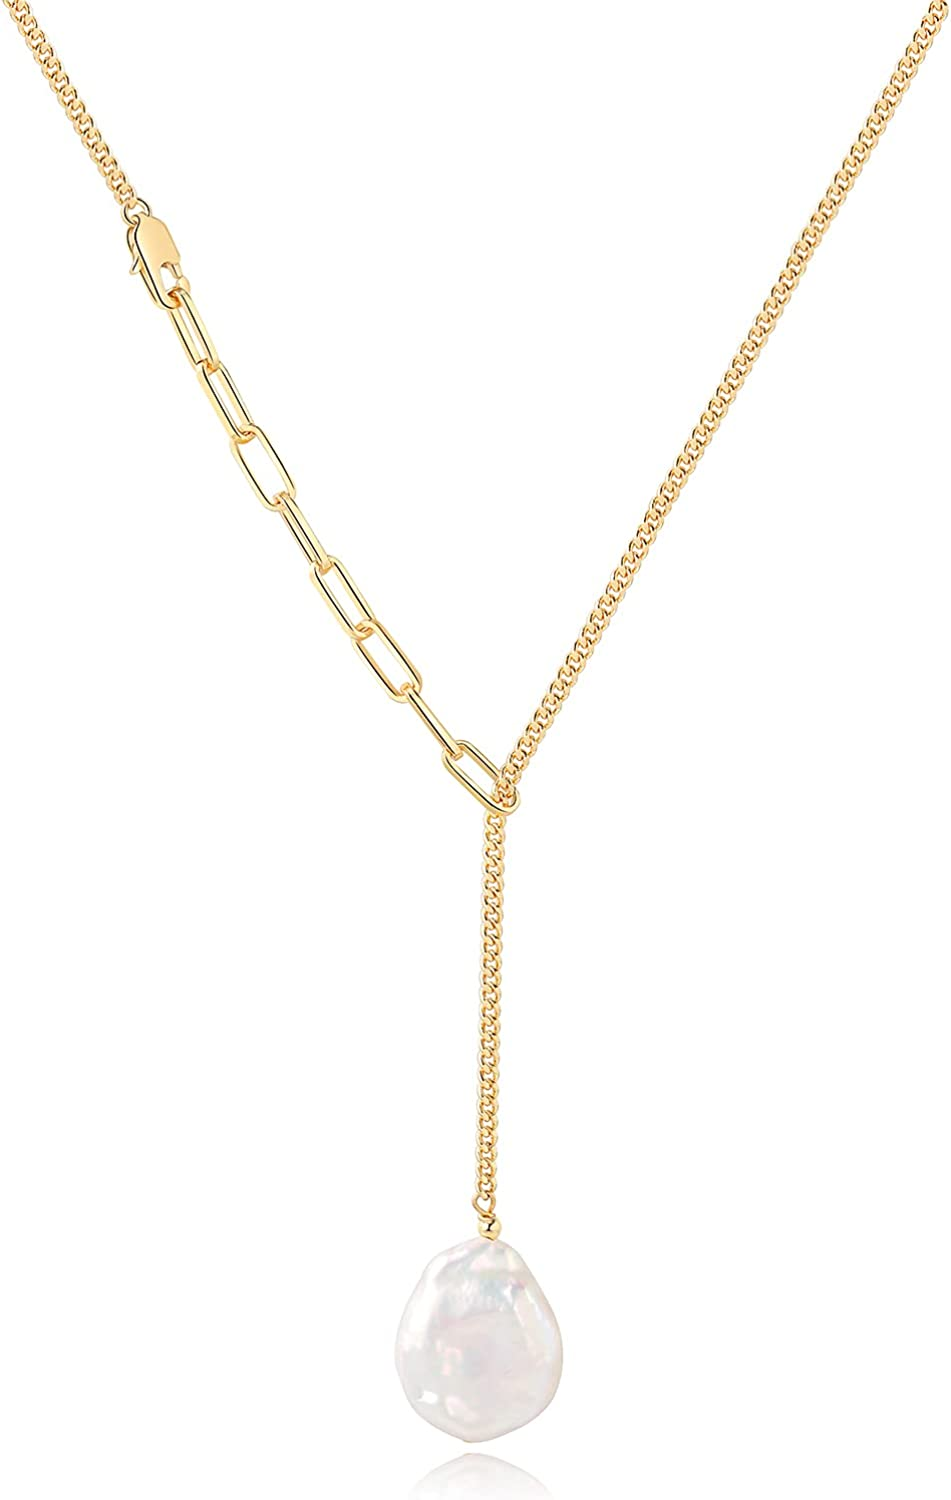 VIENNOIS Dangling Freshwater Cultured Pearl 14k Gold Link Chain Necklace 18